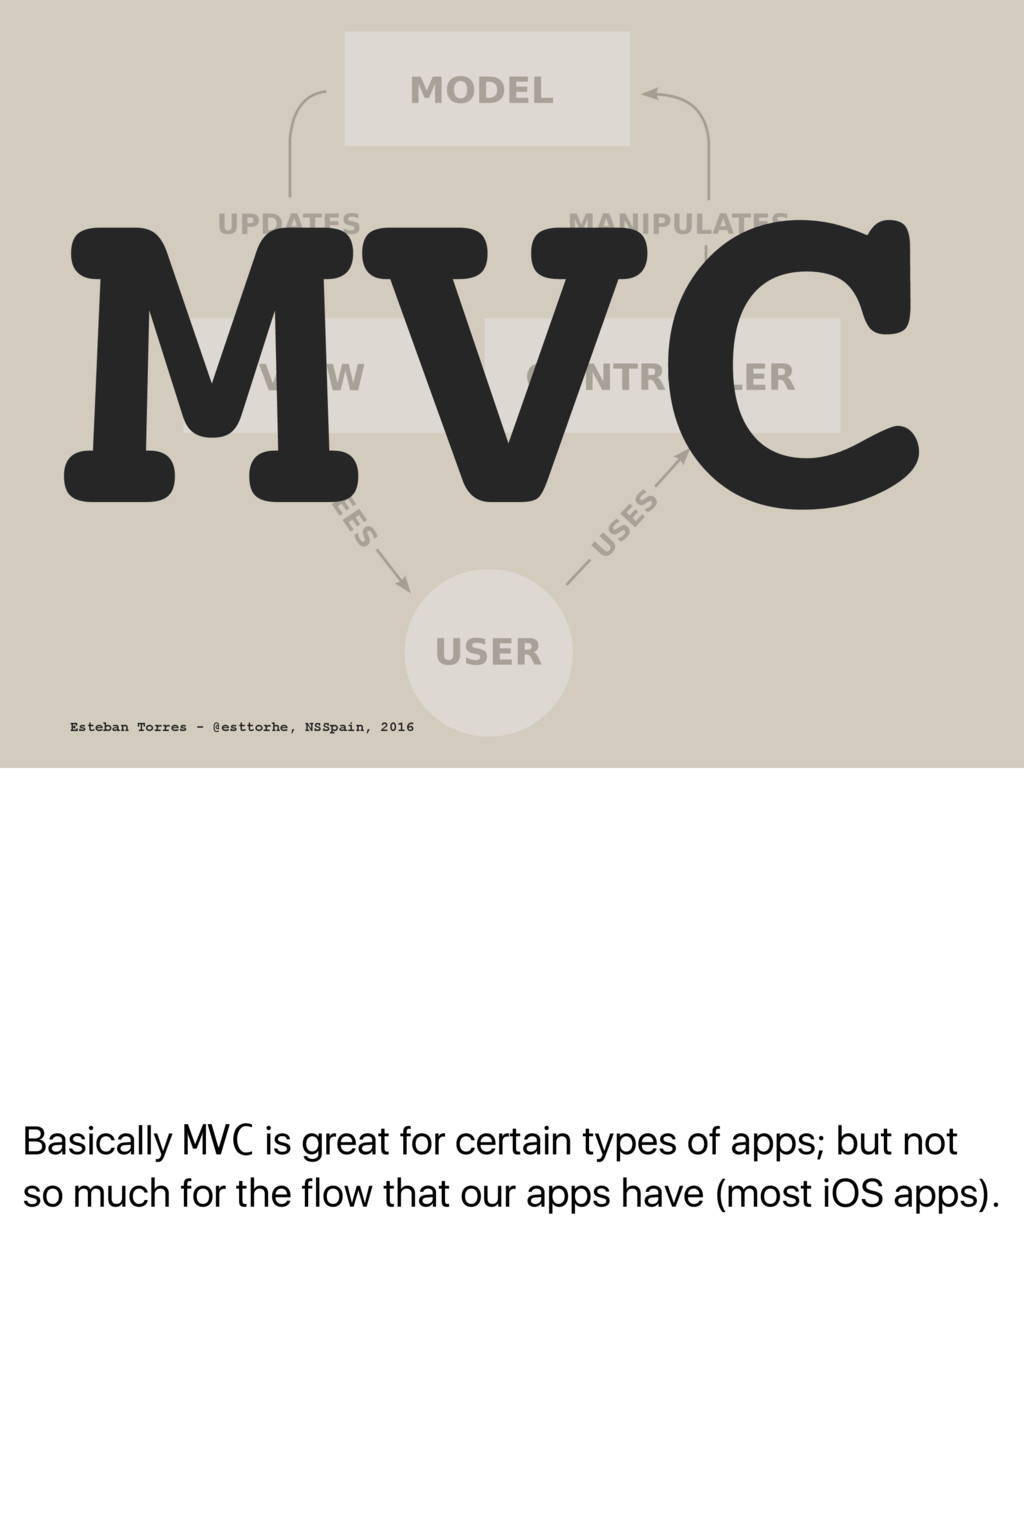 Basically MVC is great for certain types of app...